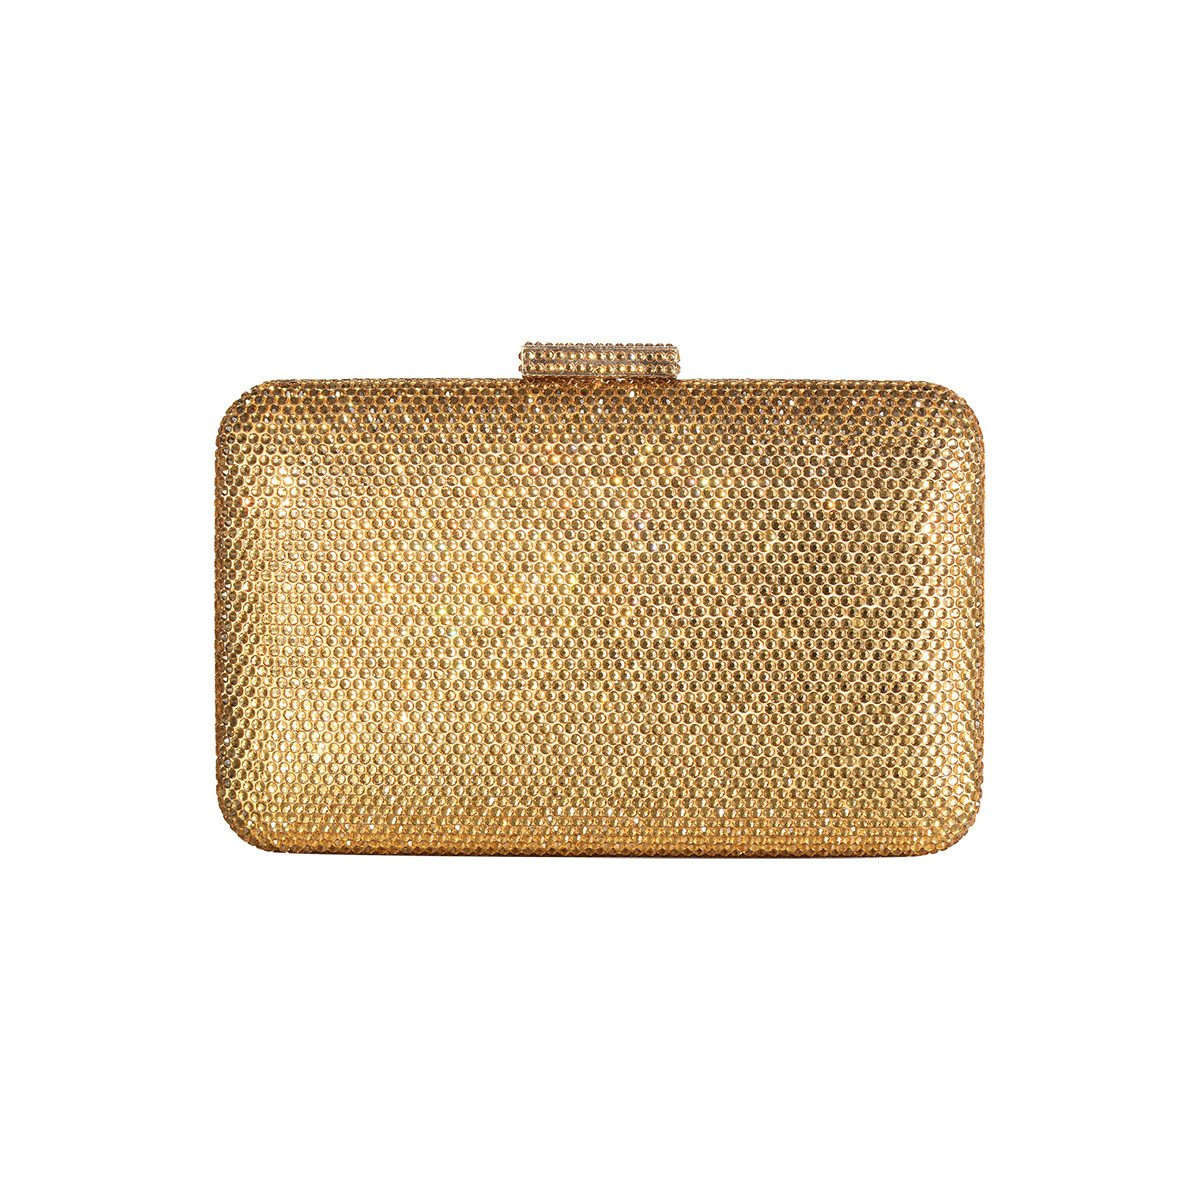 DMIX Womens Large Crystal Clutch for Wedding Bridal Party Prom Evening Bag Gold